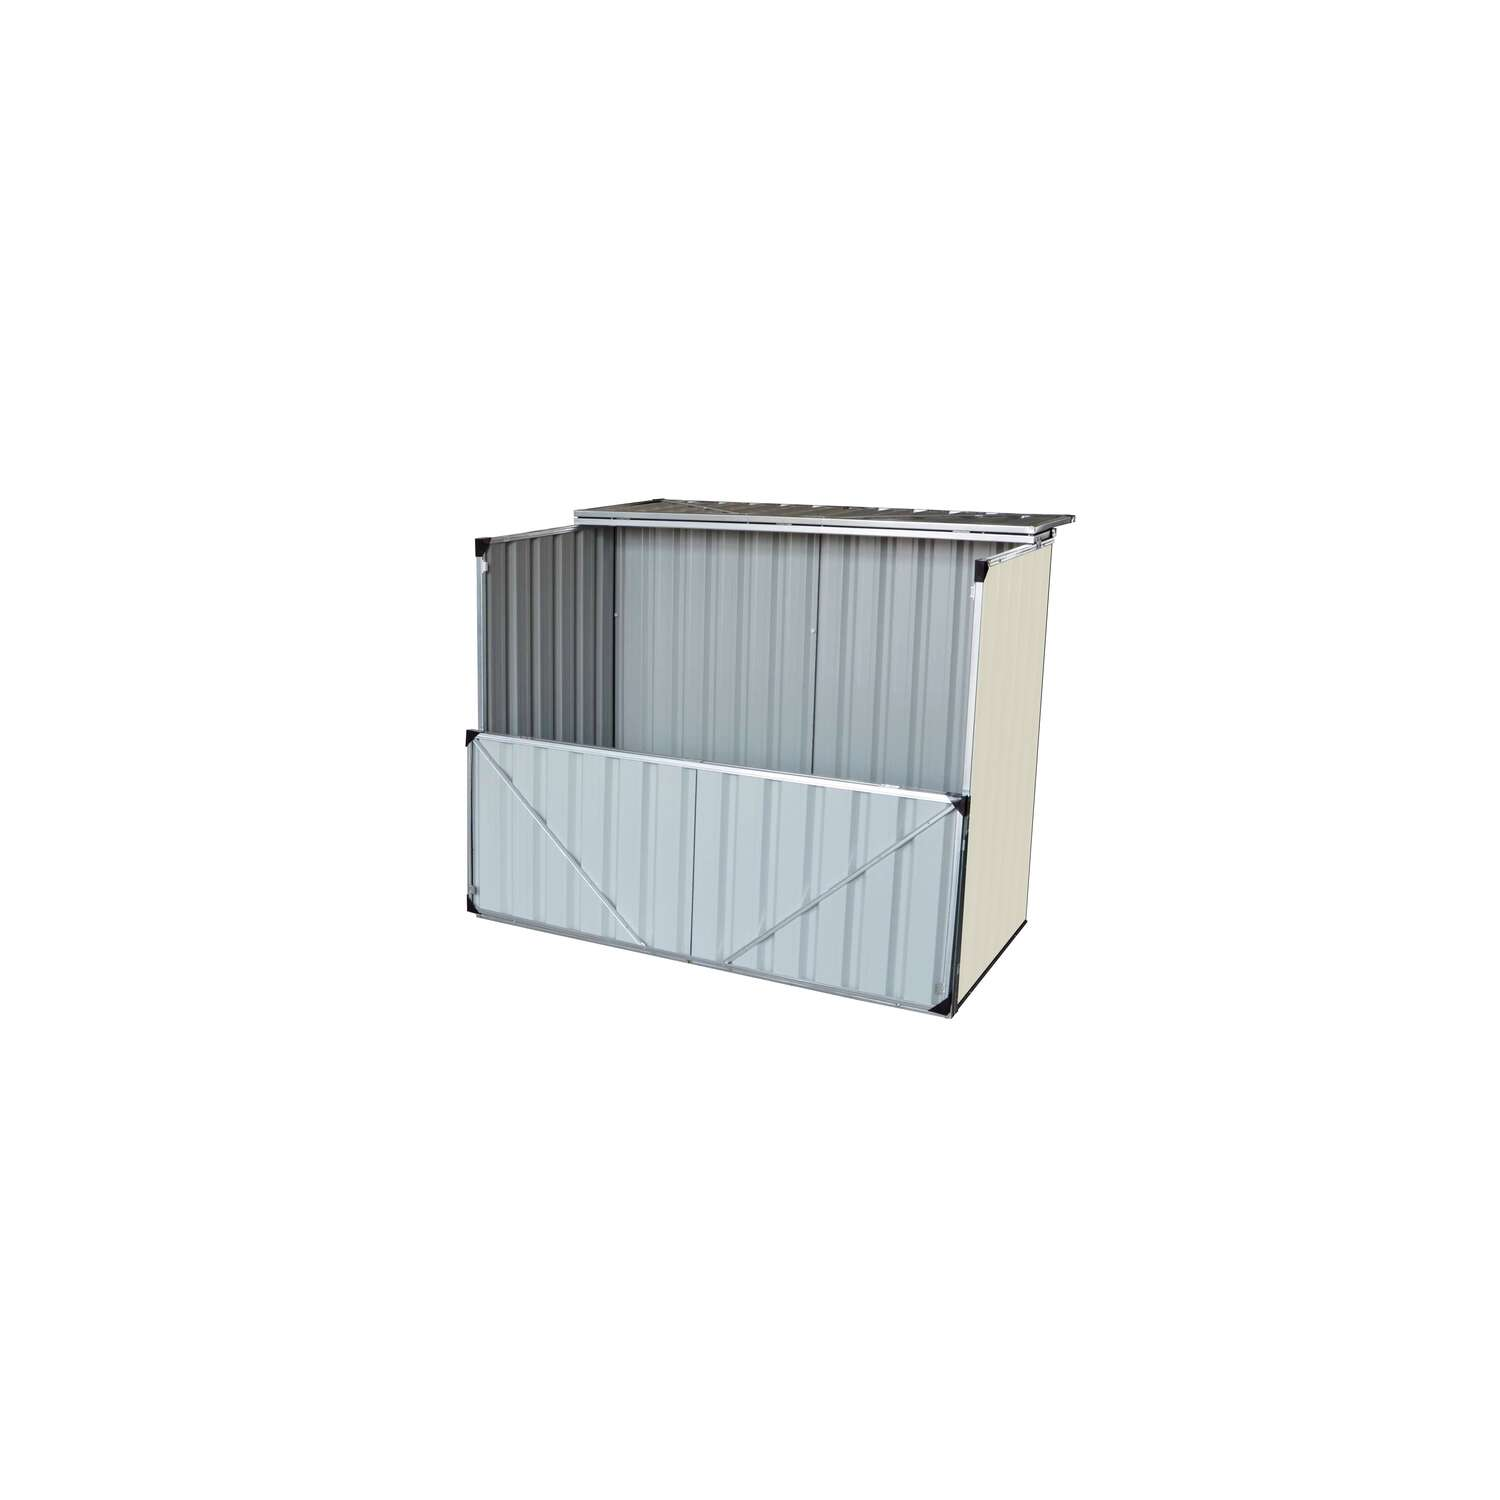 Build-Well  3.5 ft. H x 4.16 ft. W x 3 ft. D Cream  Steel  Outdoor Storage Shed